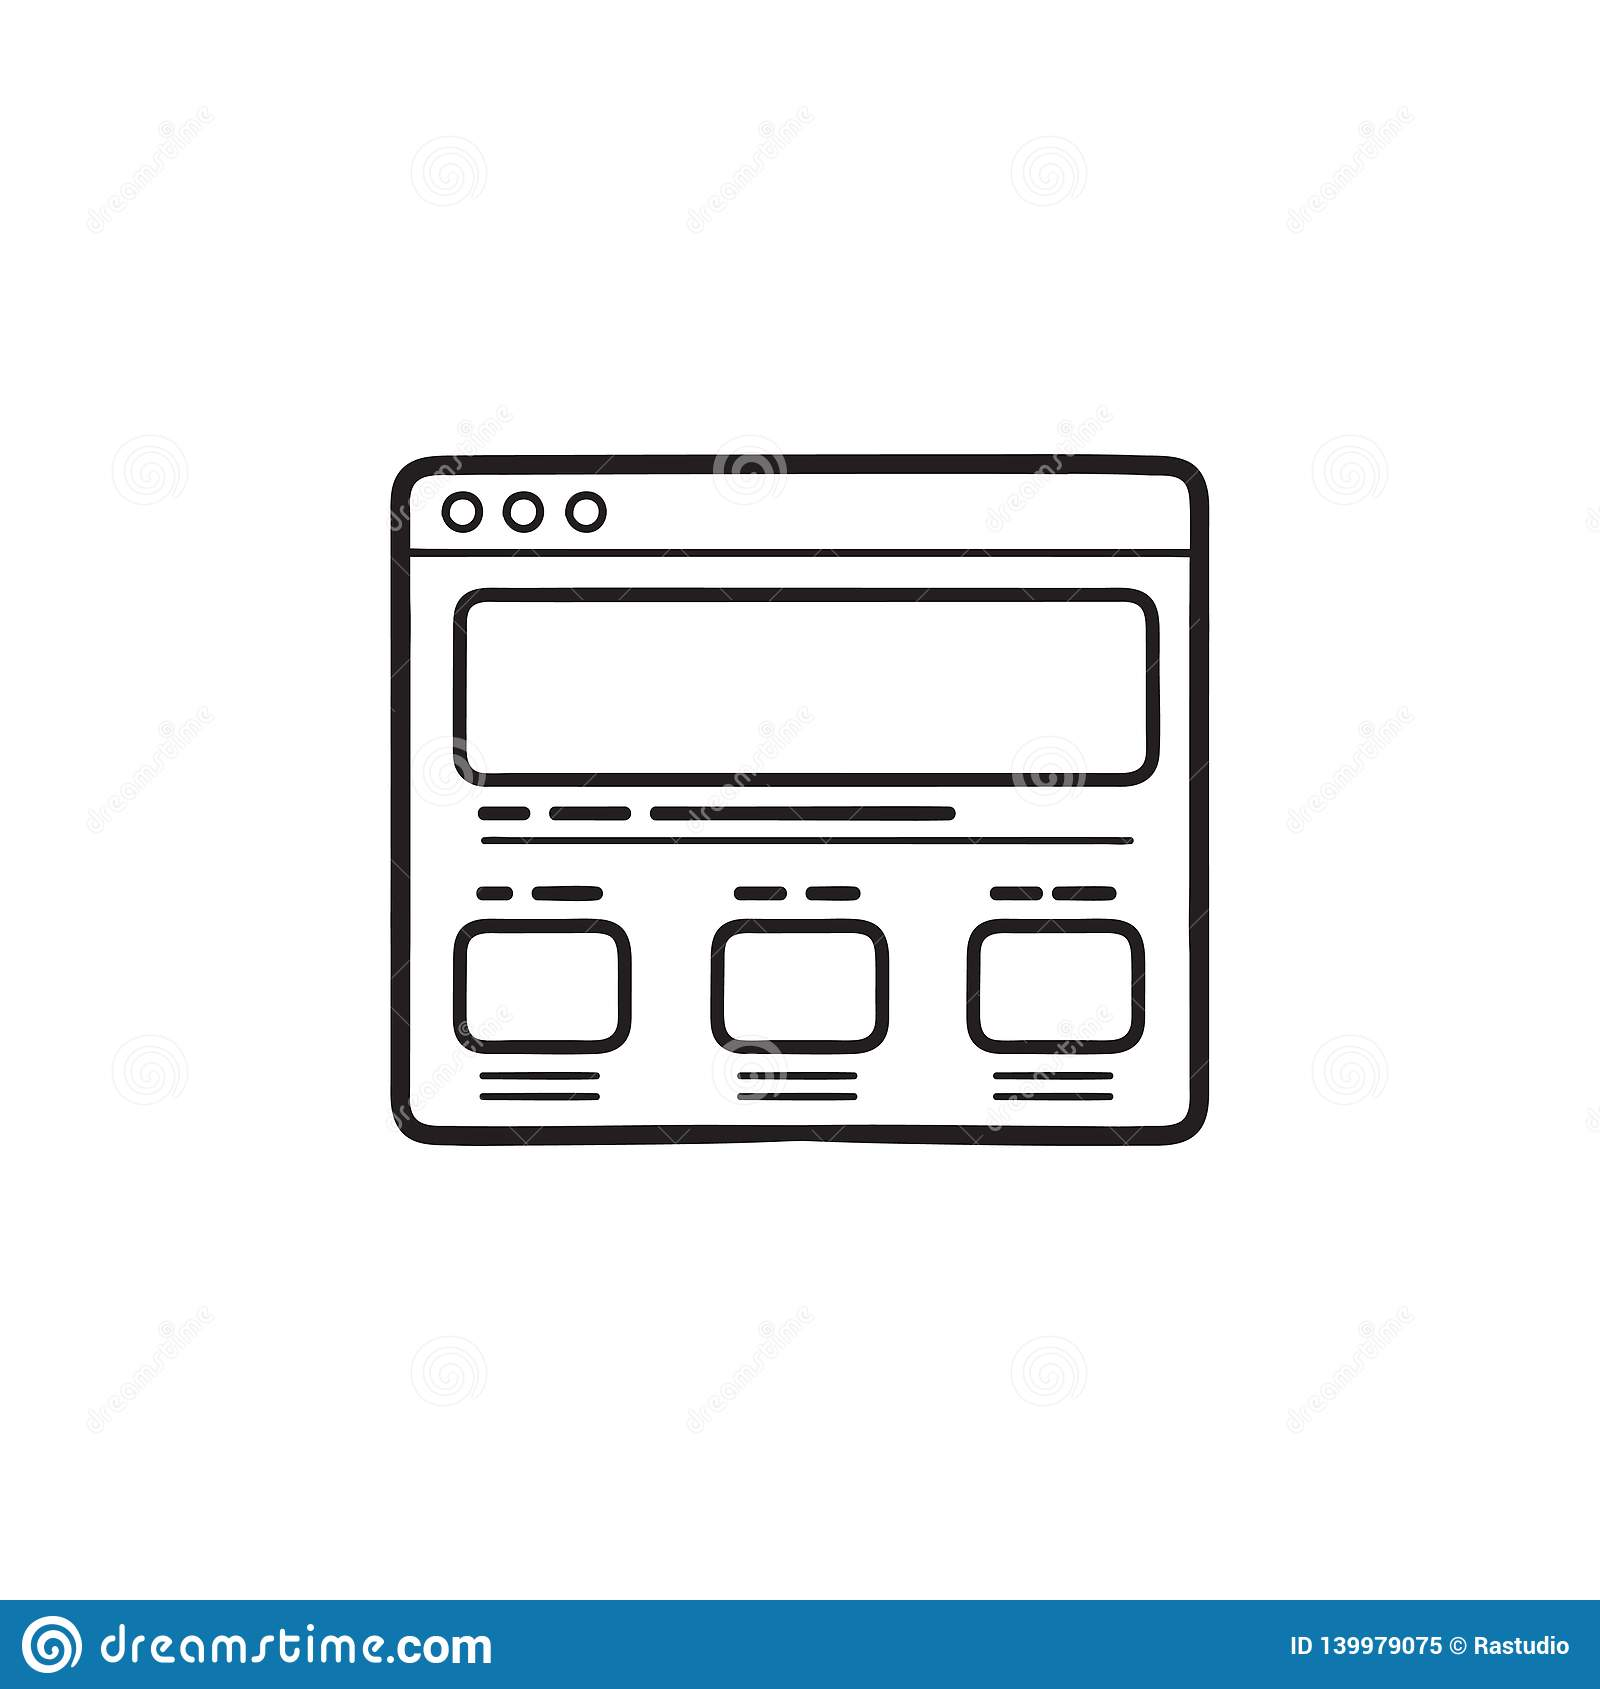 Web page design hand drawn outline doodle icon.